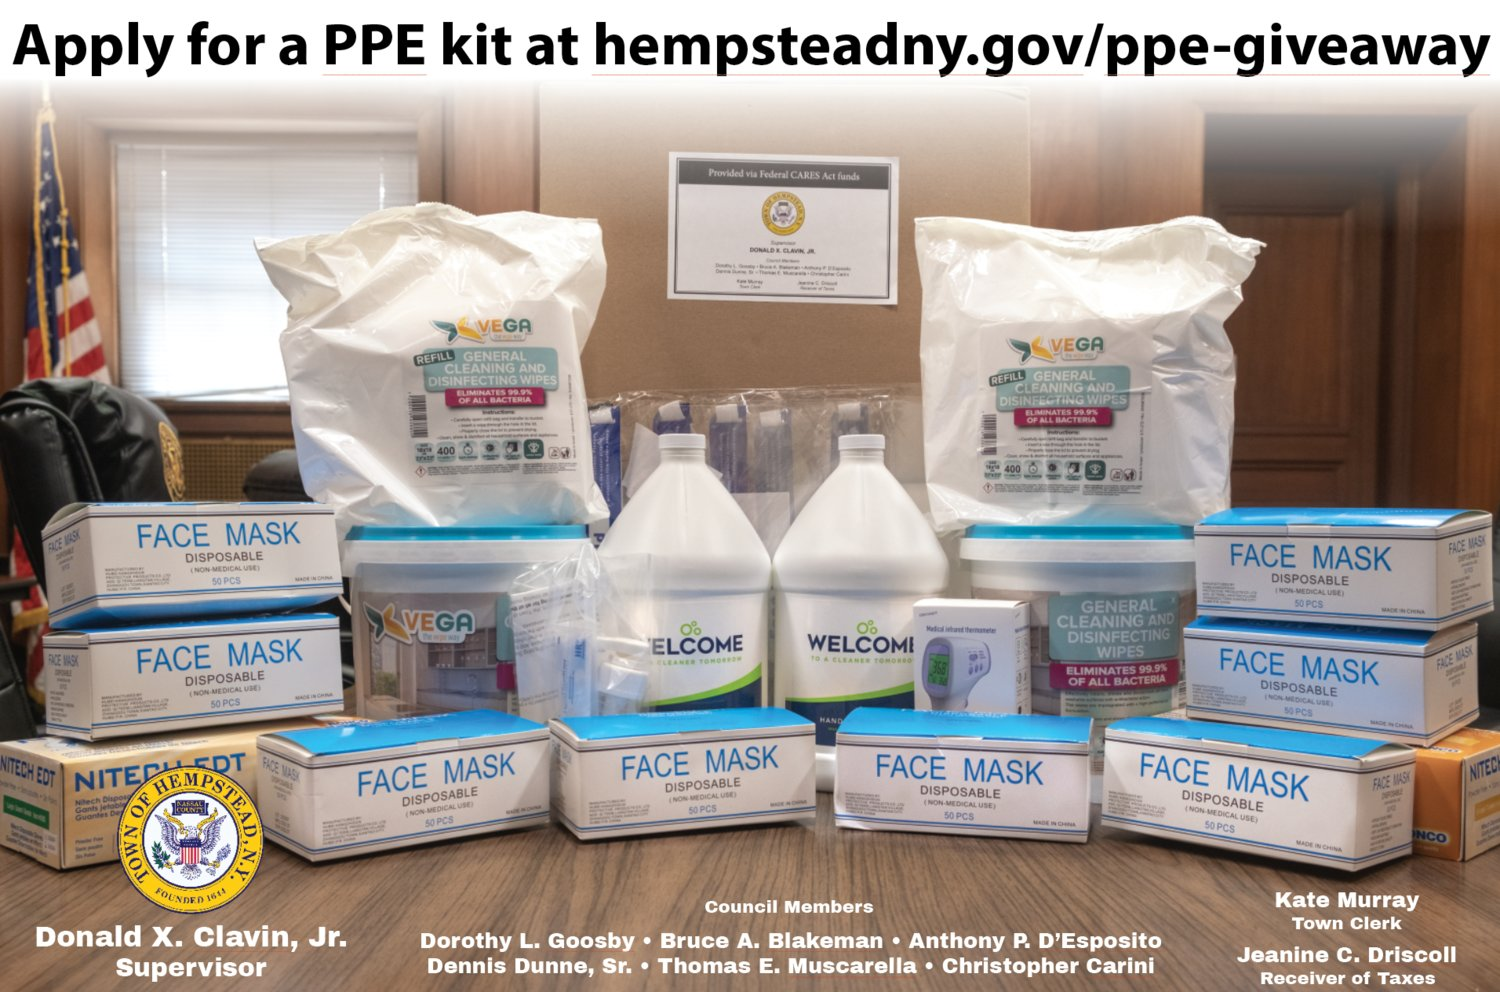 The kits include a contactless infrared digital thermometer, five face shields, eight boxes of 50 three-ply masks, 100 pairs each of powder-free and vinyl gloves, two gallons of spray-pump hand sanitizer and one canister containing 1,500 sanitizing wipes.